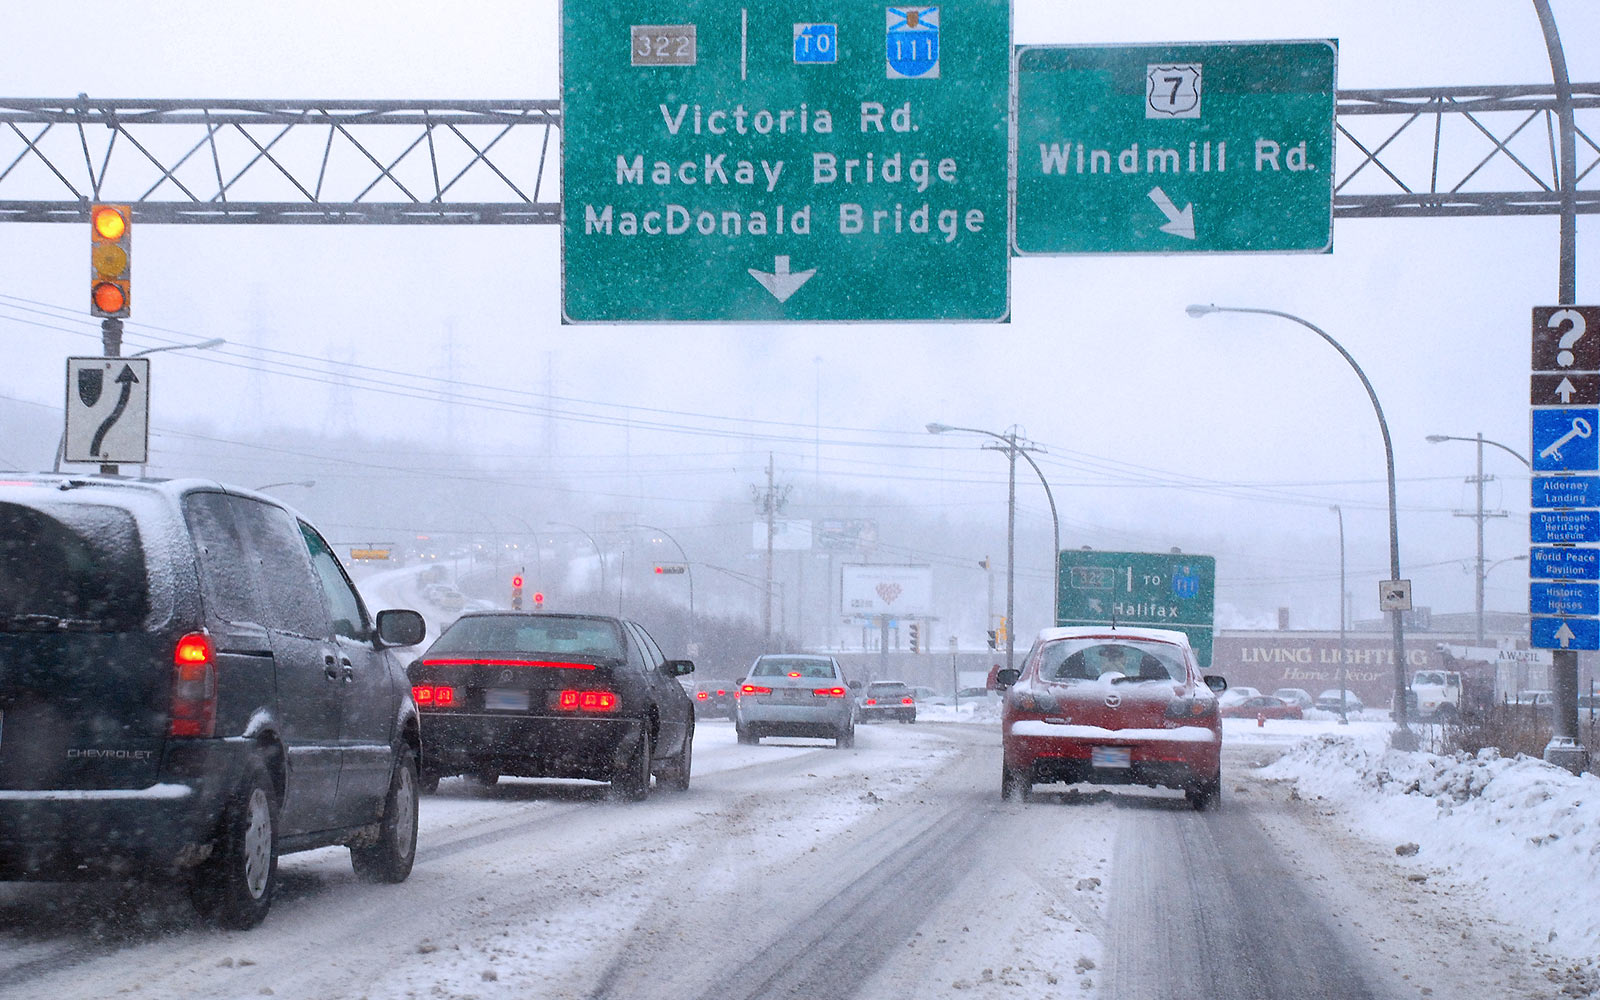 Winter Driving Safety Tips to Carry into the Beginning of the Season